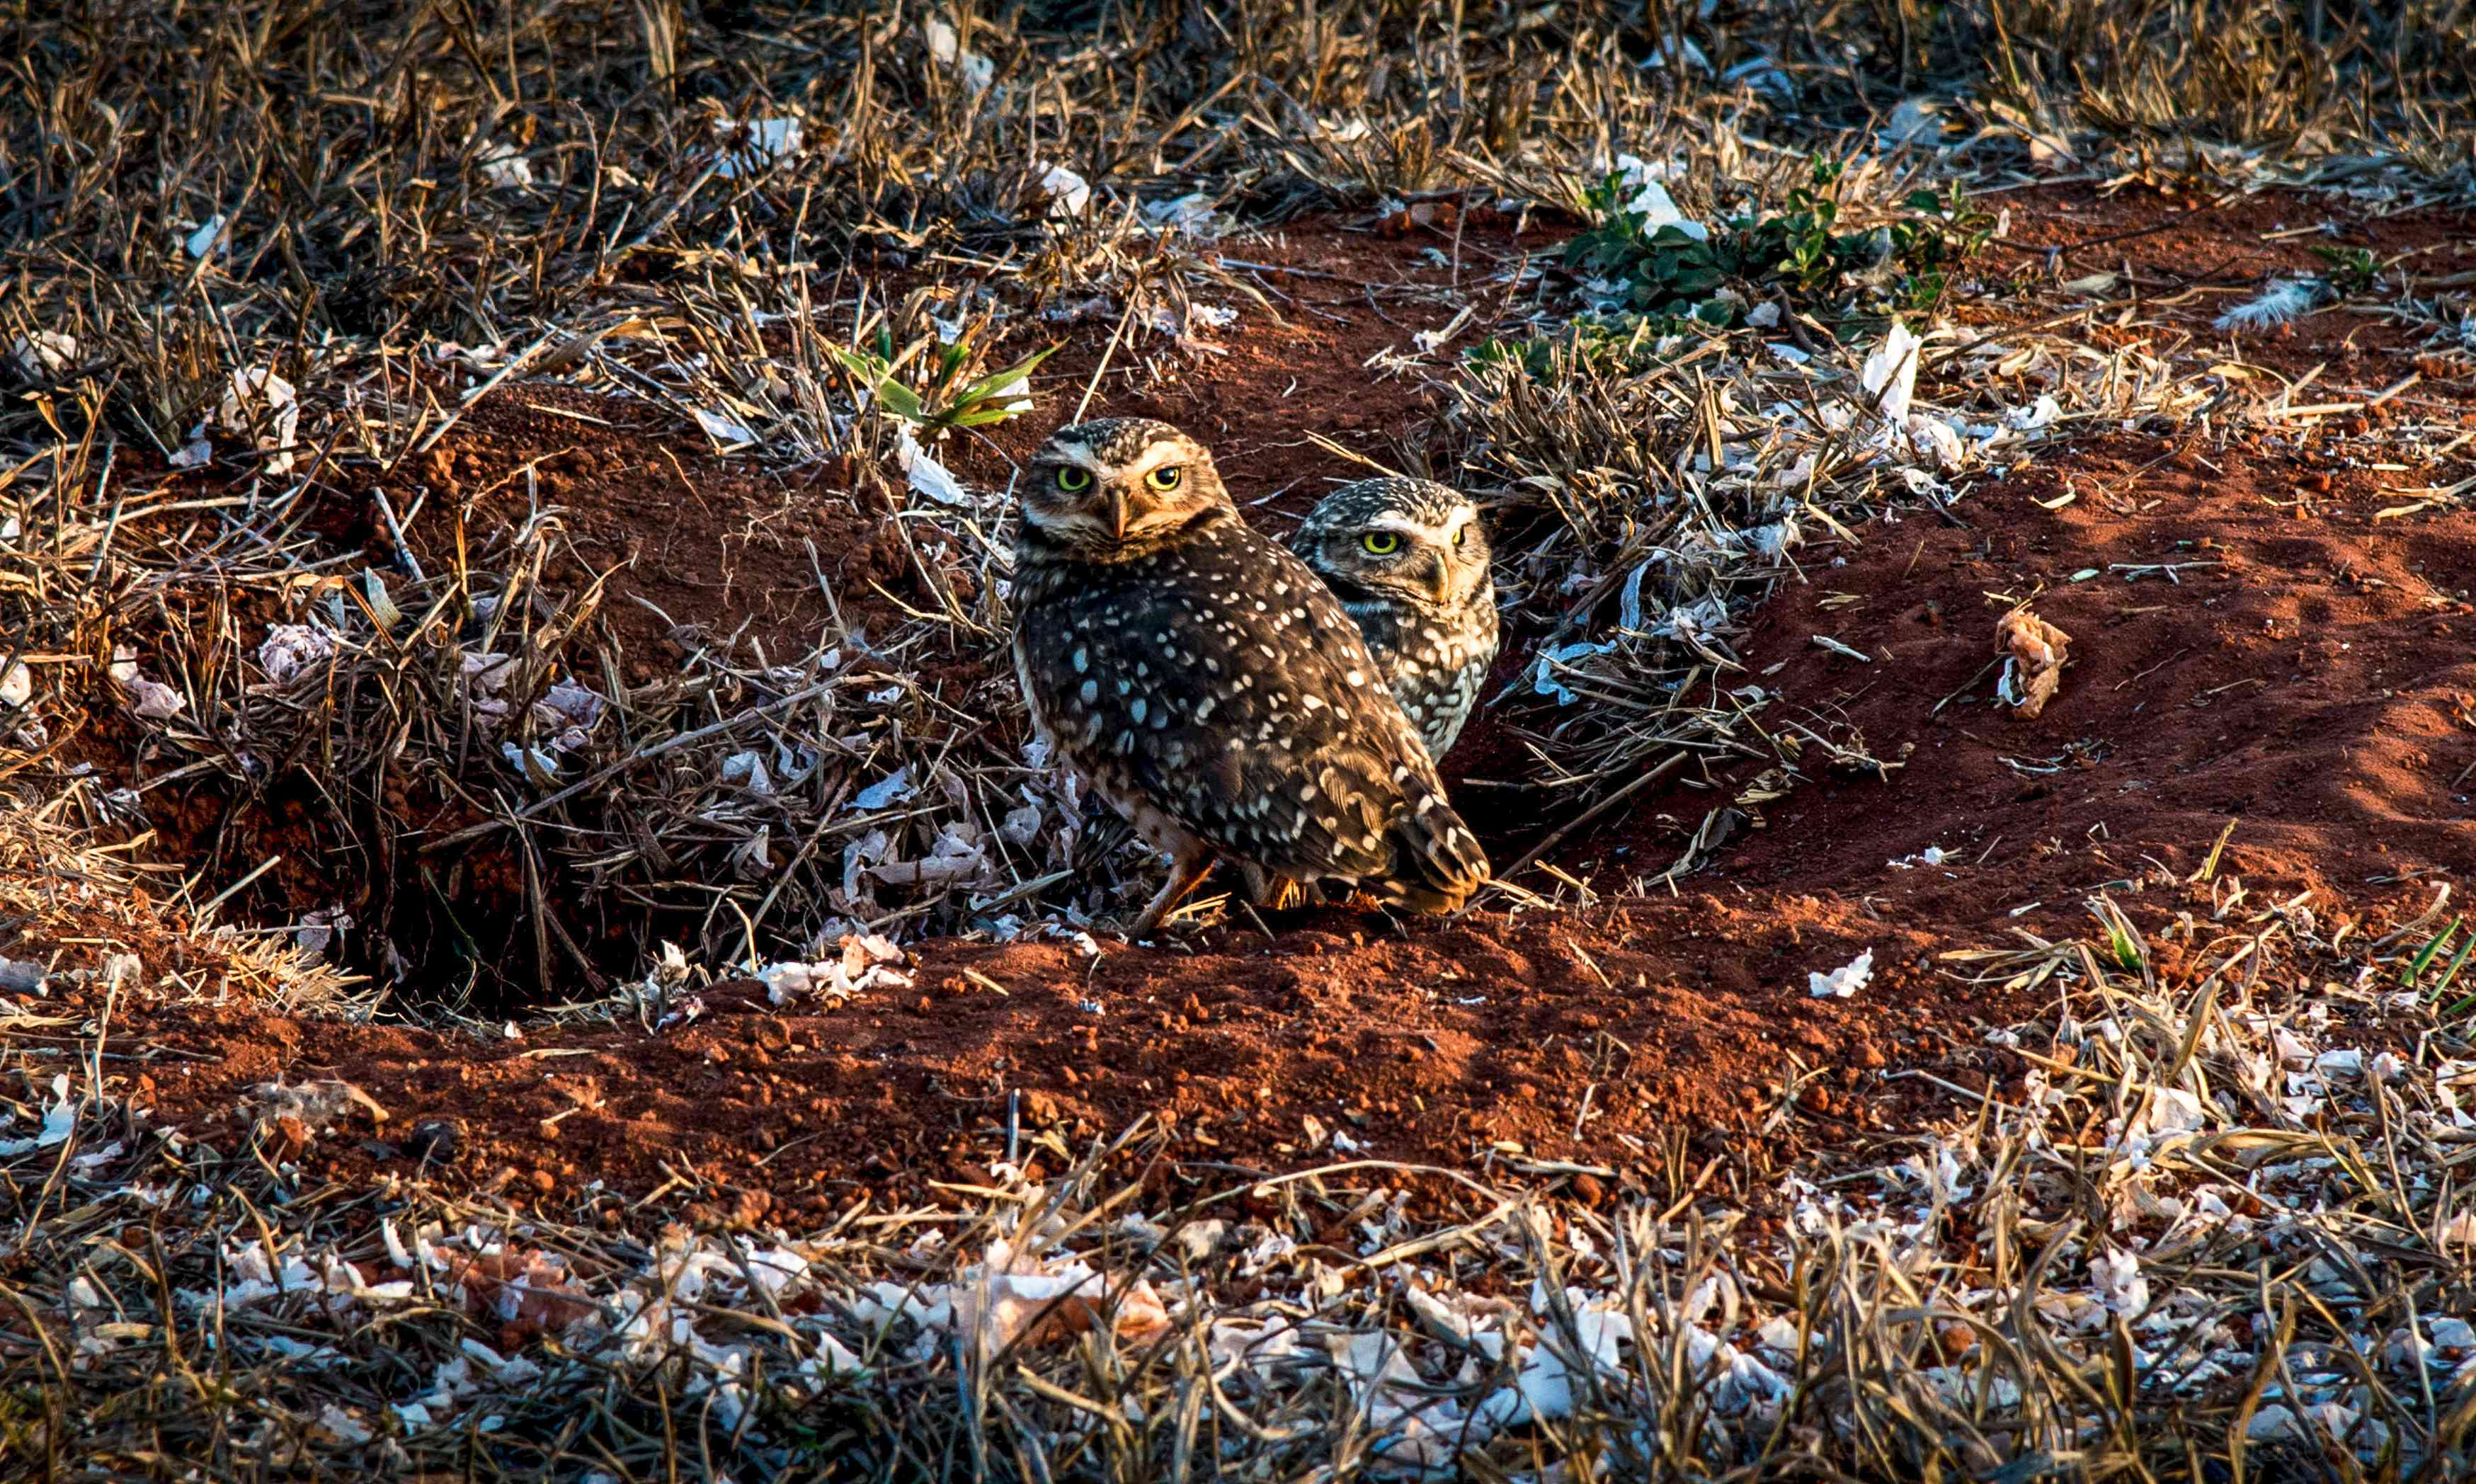 Two burrowing owls with